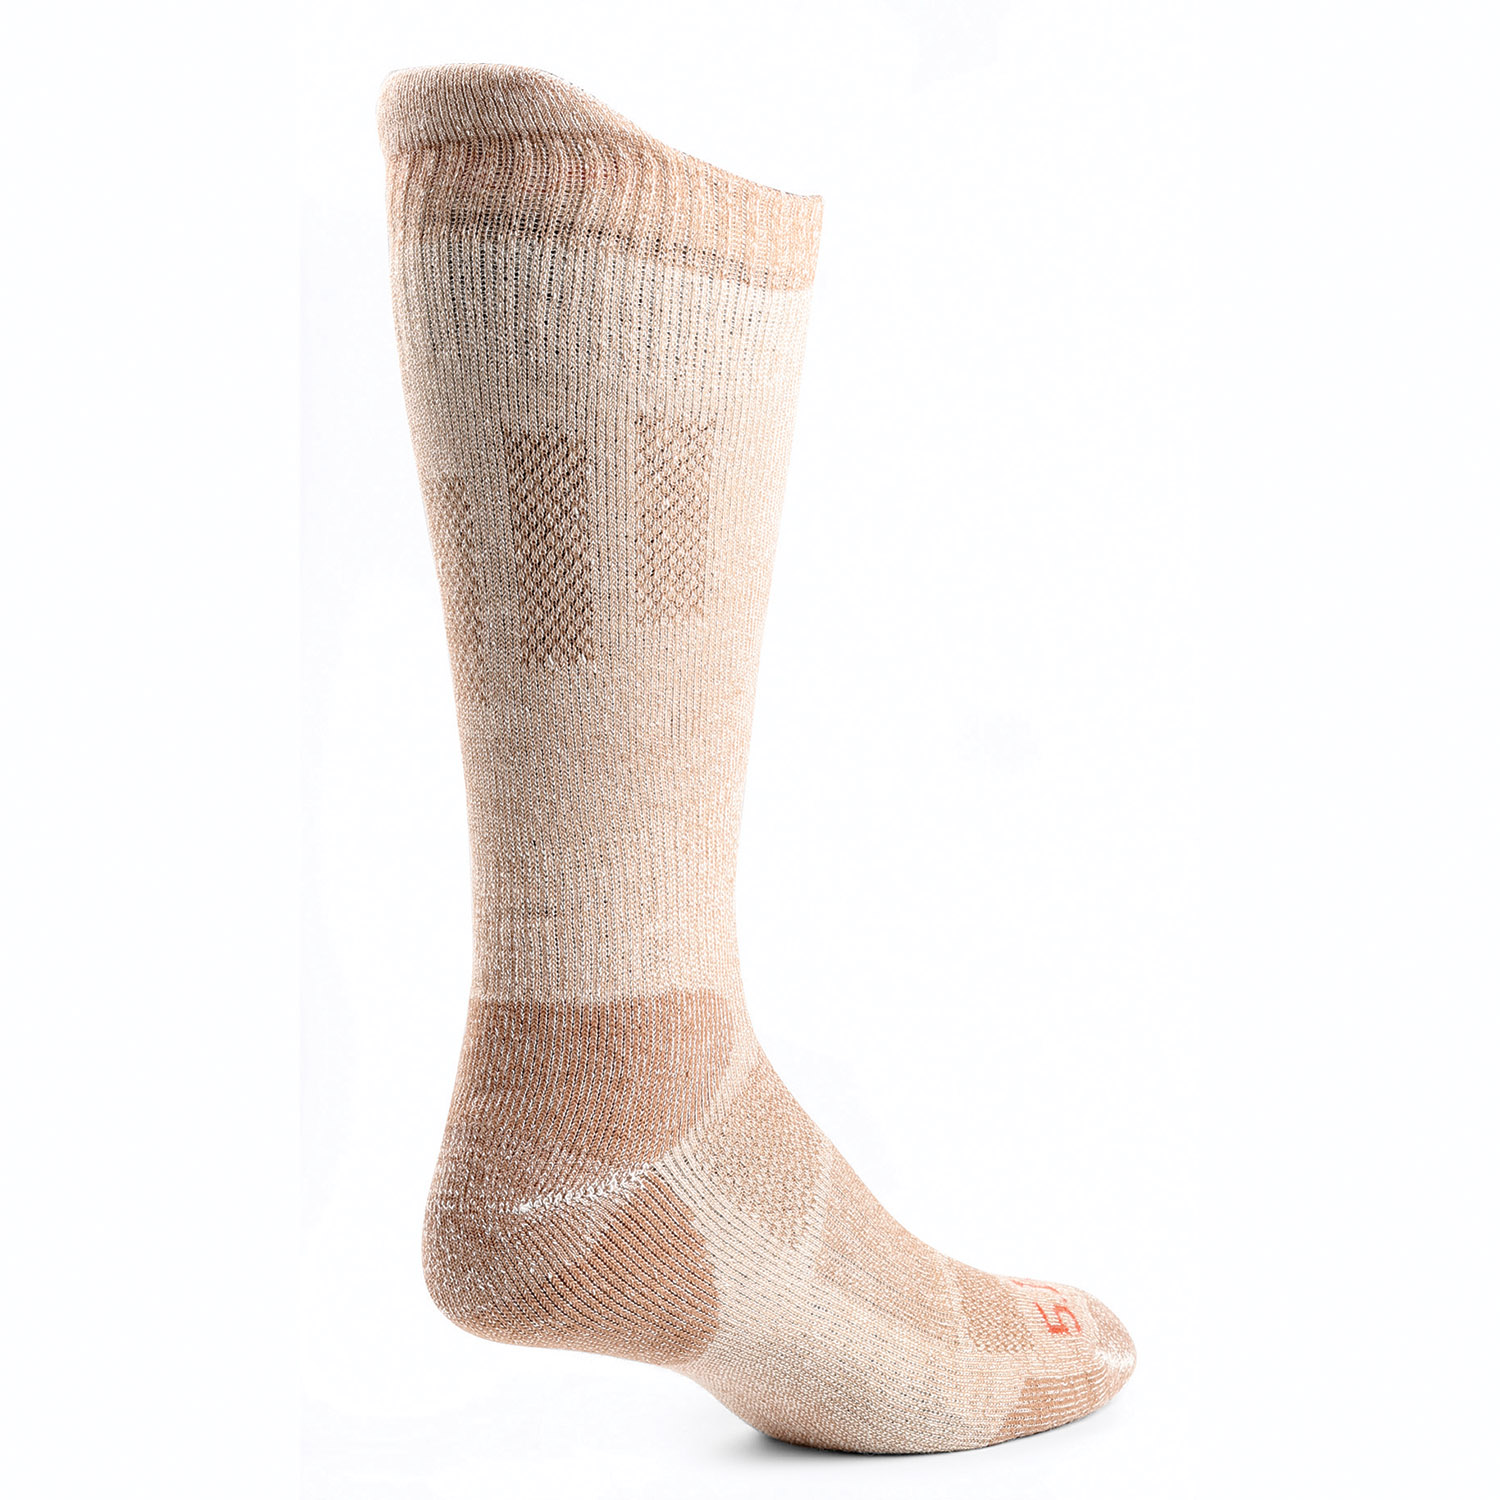 5.11 Tactical Cold Weather Crew Socks